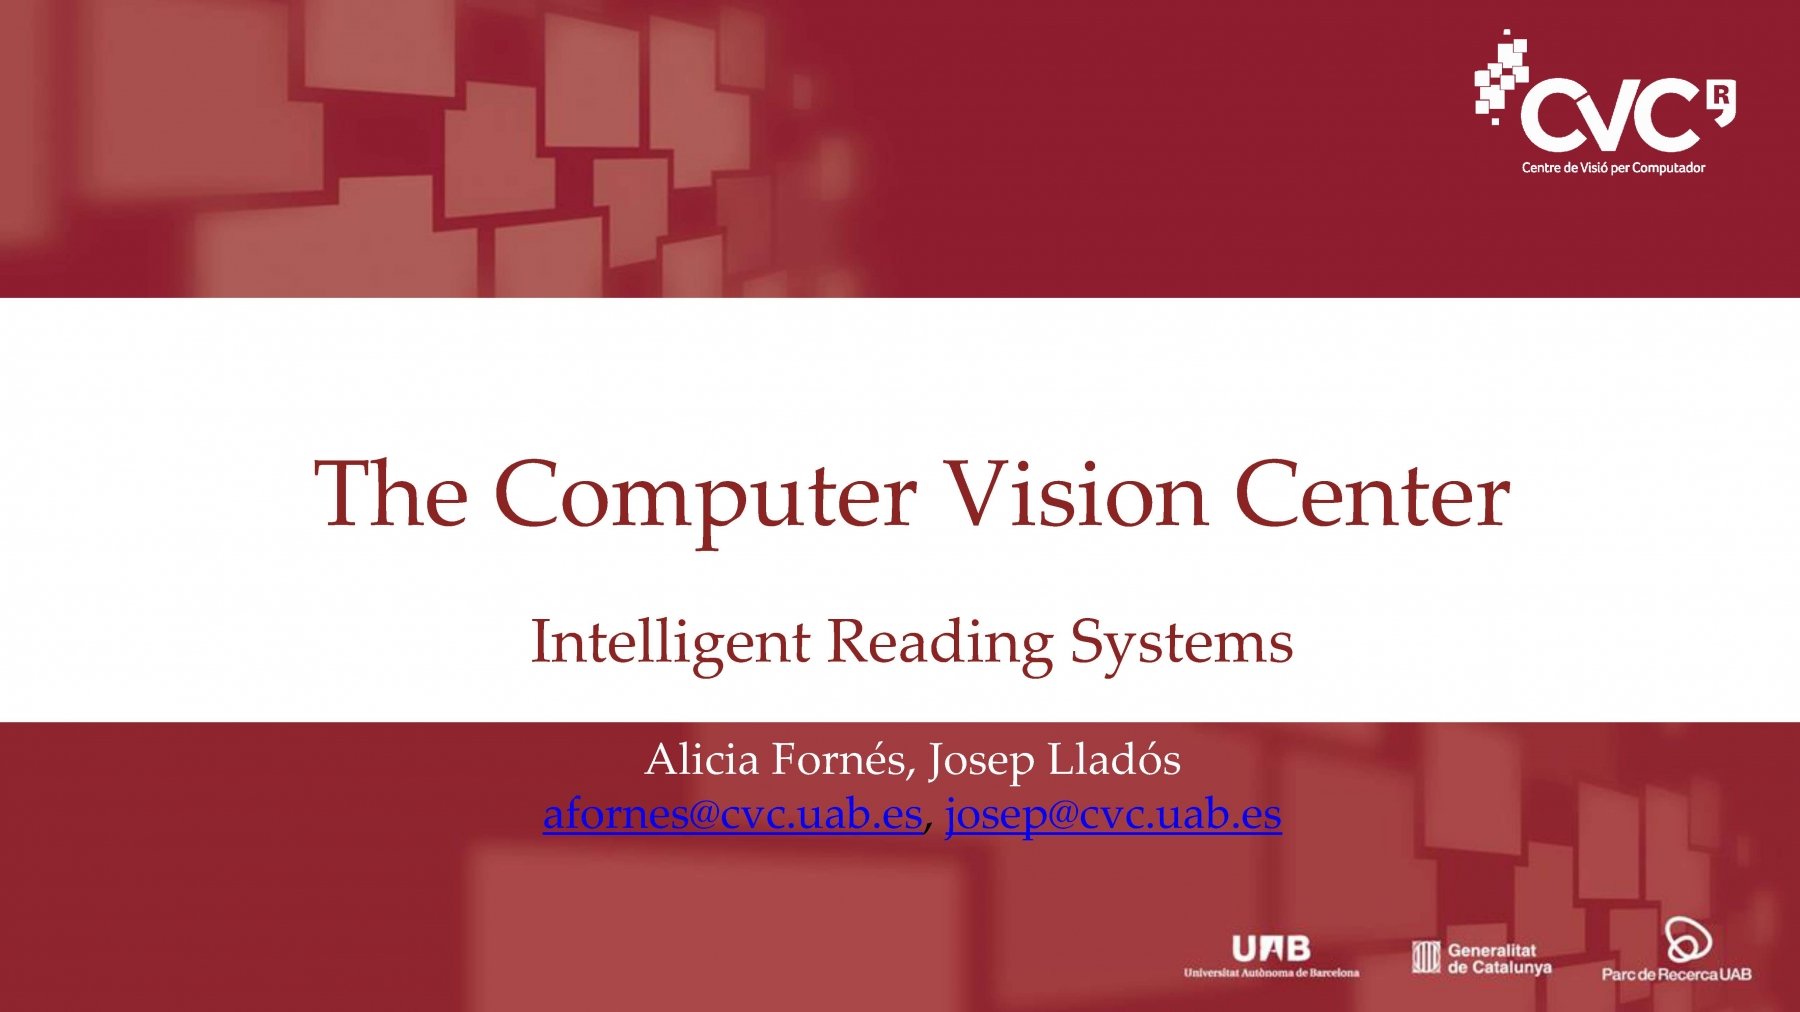 Computer Vision Center (pres. by Alicia Fornés)